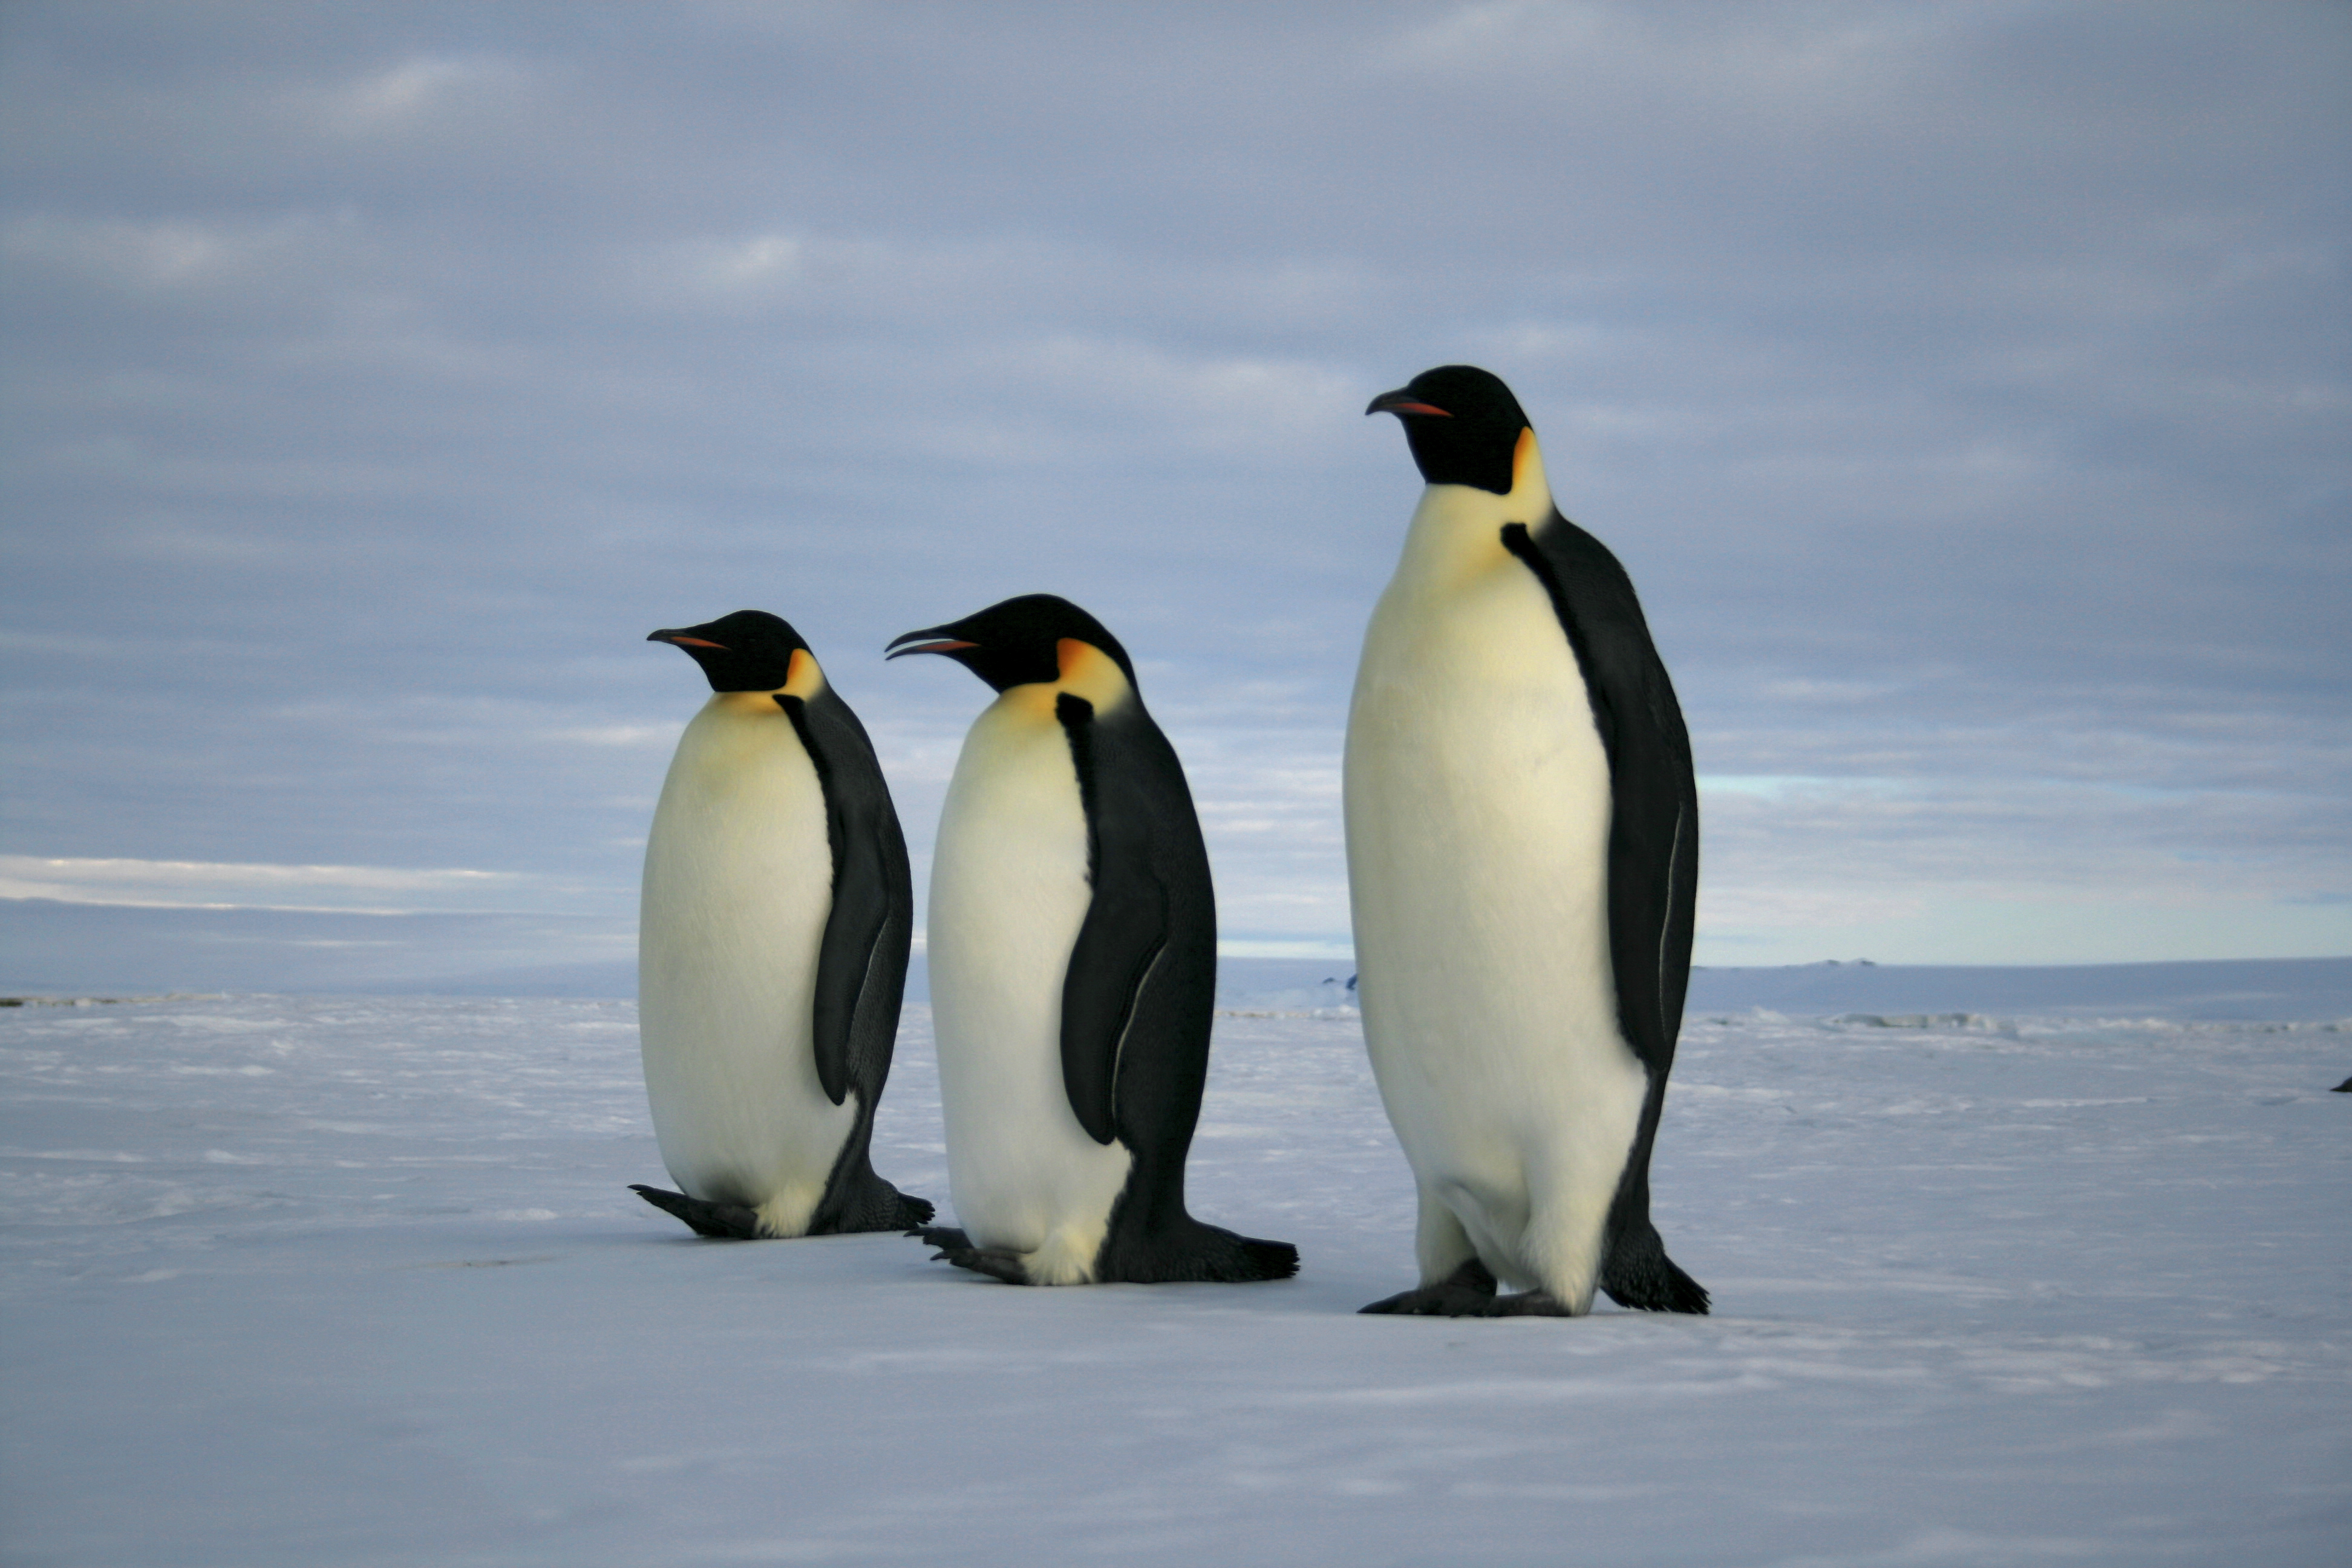 Emperor Penguin Populations Could Decline by 98% by 2100